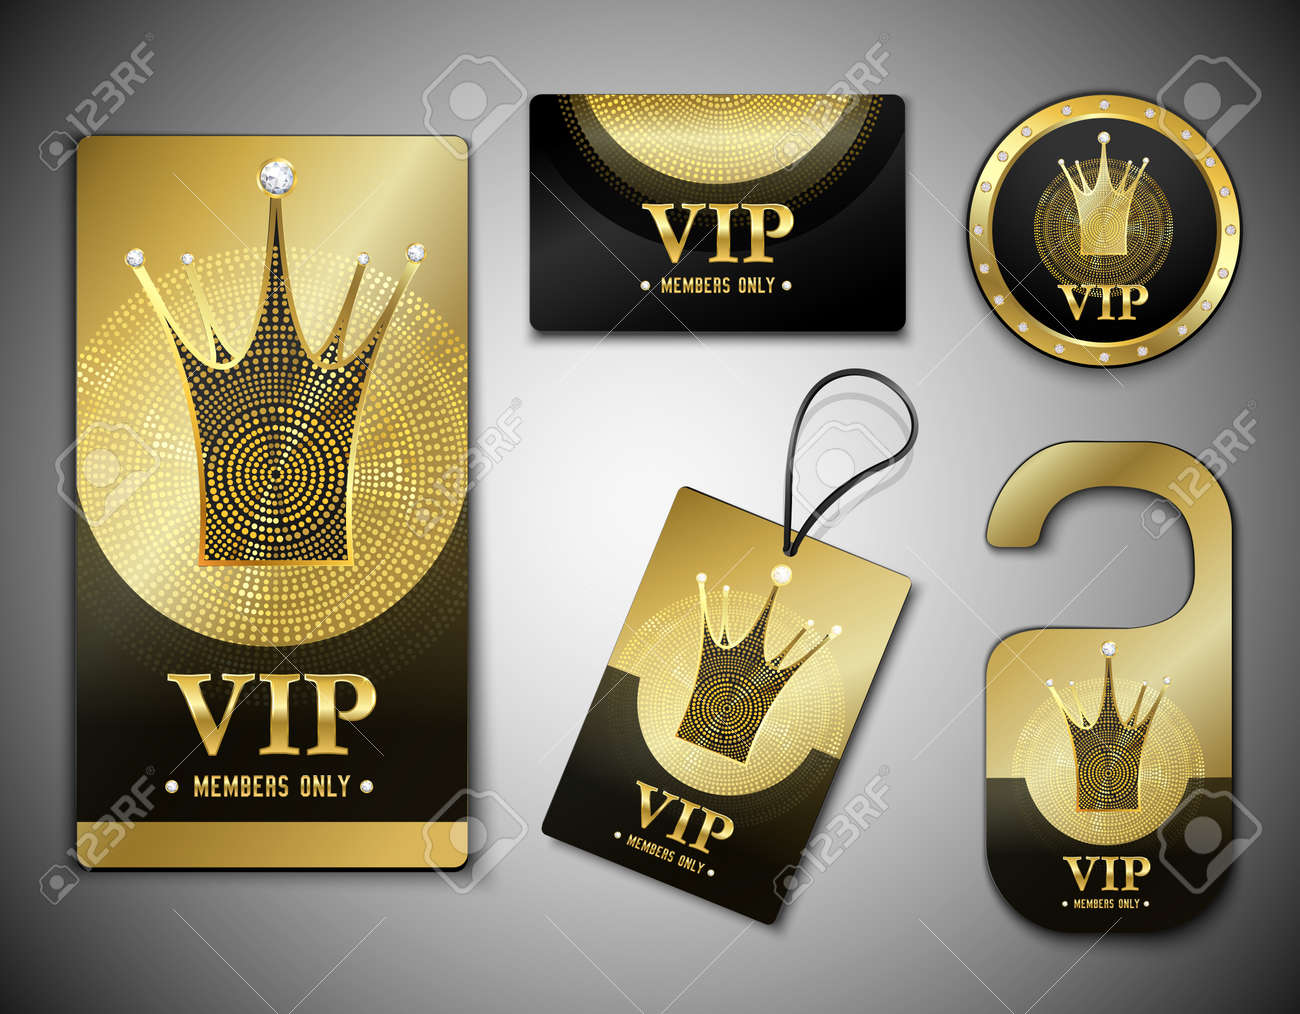 Vip member elements set with cards, label, token, design template in black golden colors isolated vector illustration - 165884775